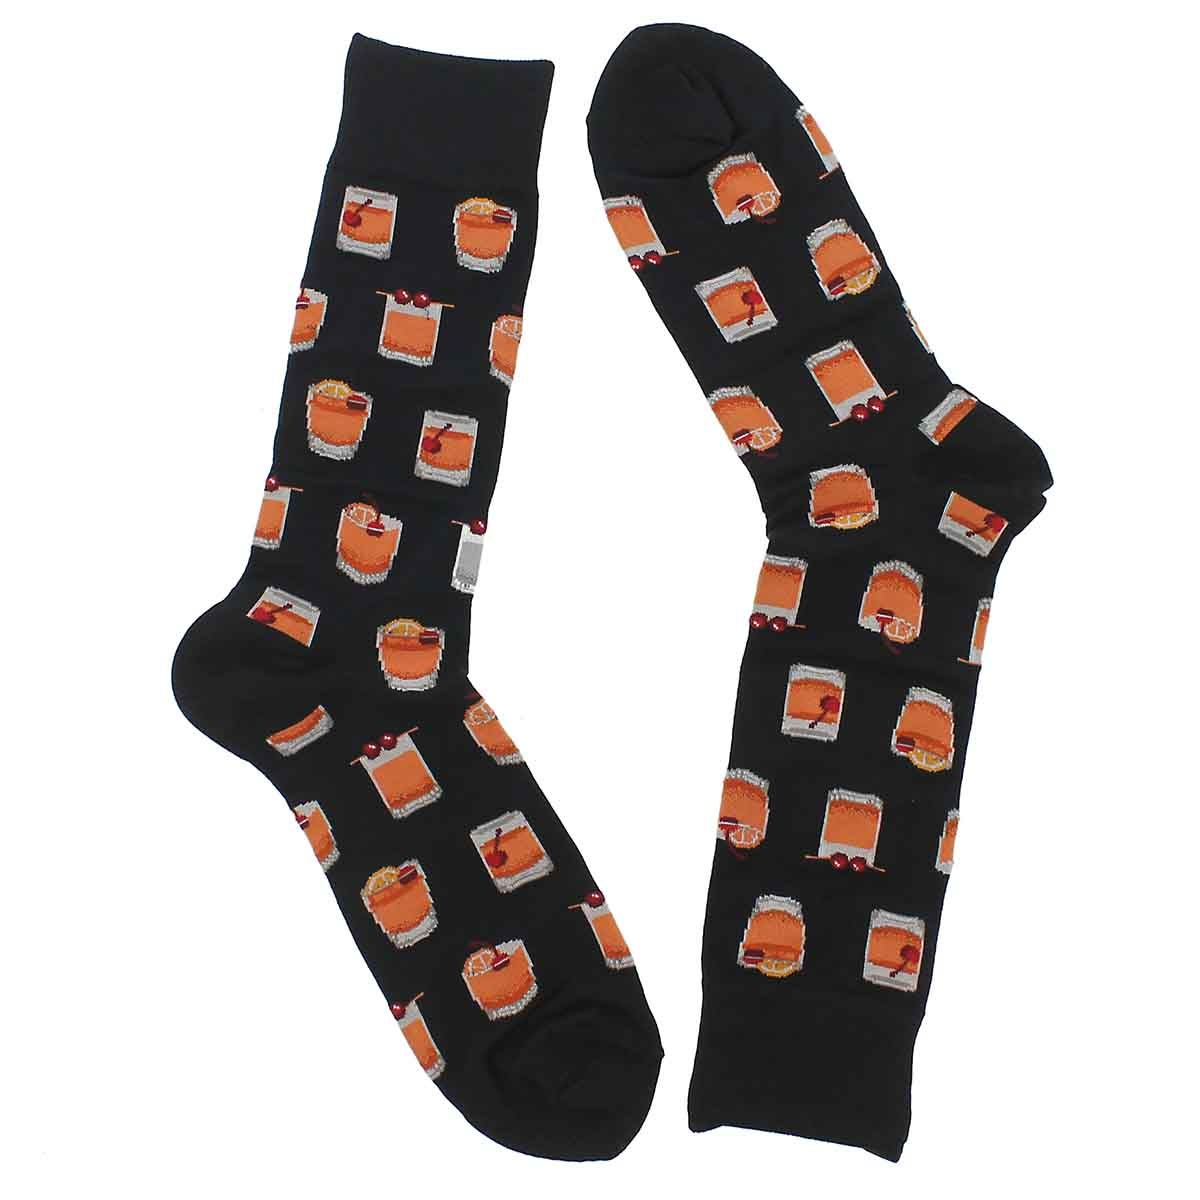 Mns Old Fashioned black printed sock